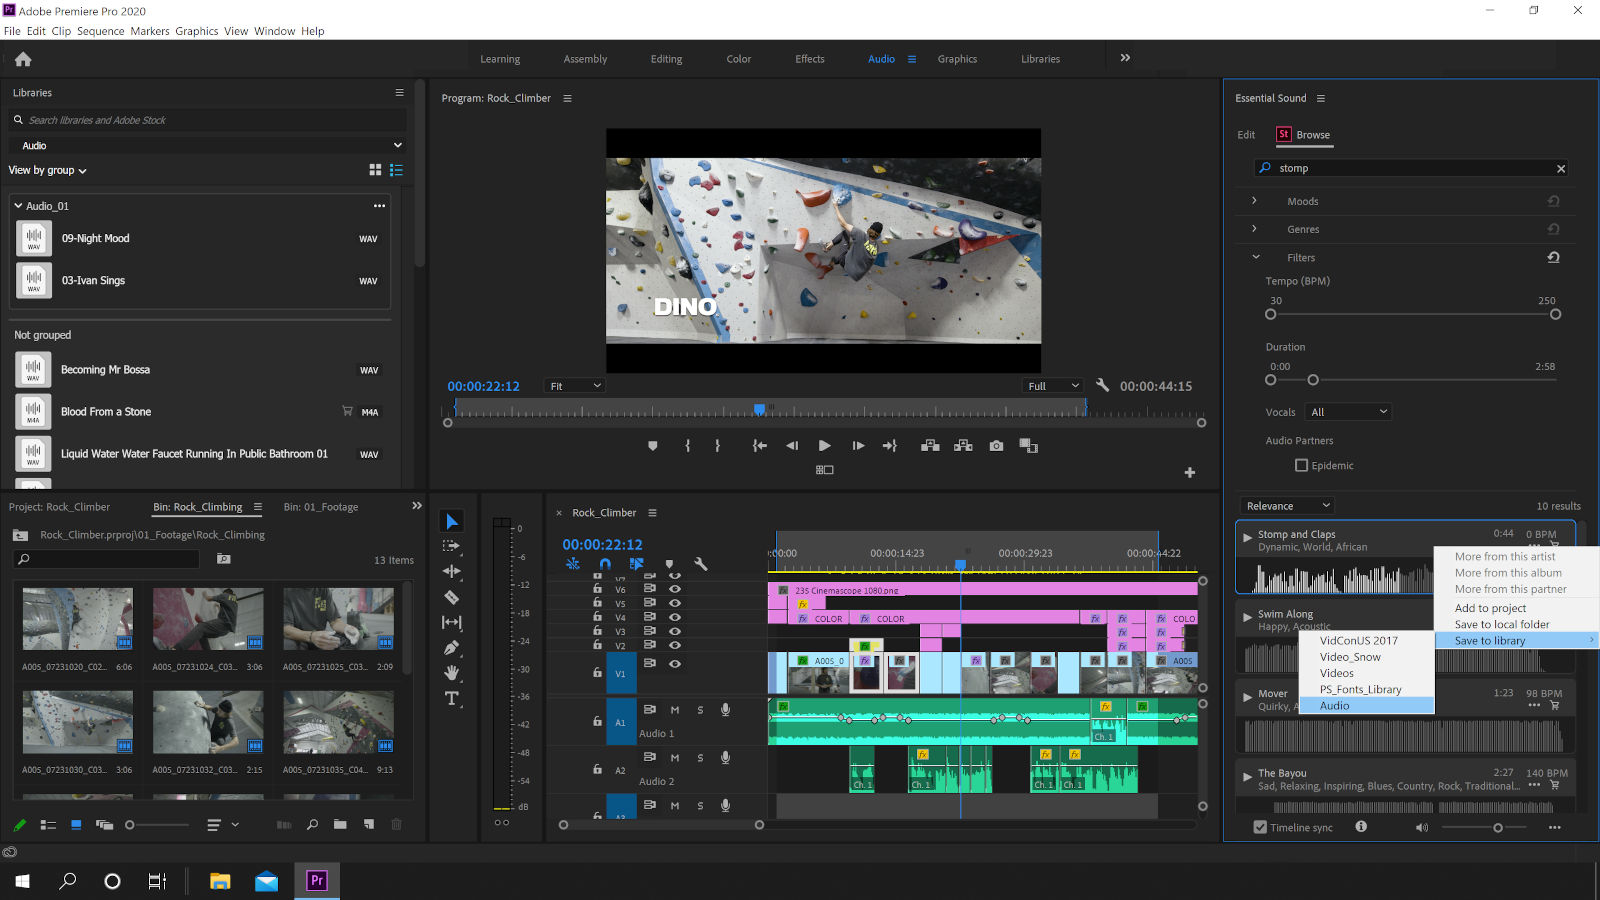 June update: Adobe Premiere Pro CC integrates stock audio libraries for easy licensing